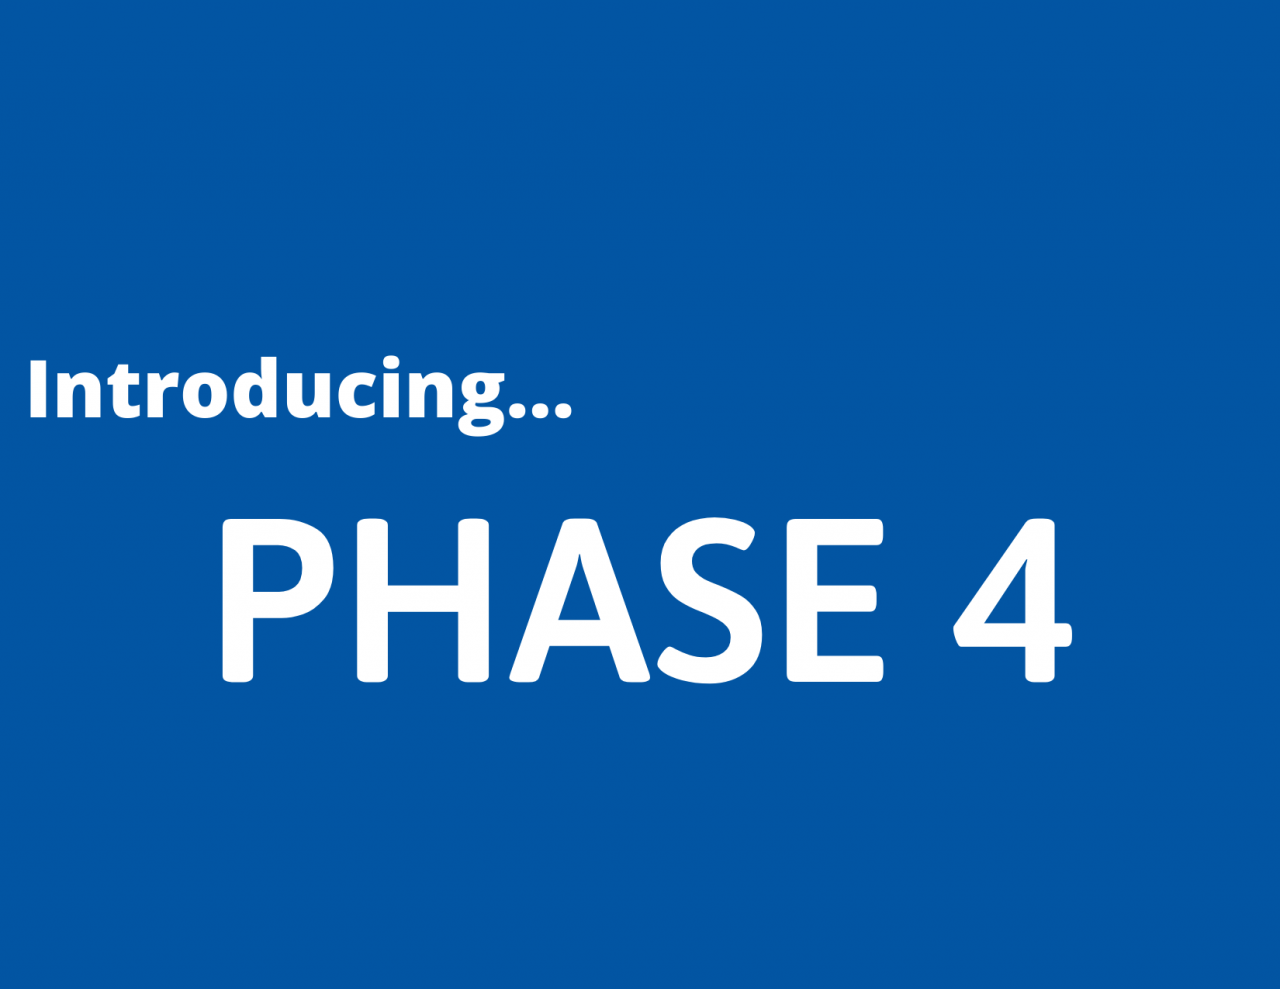 Introducing-Phase-4-